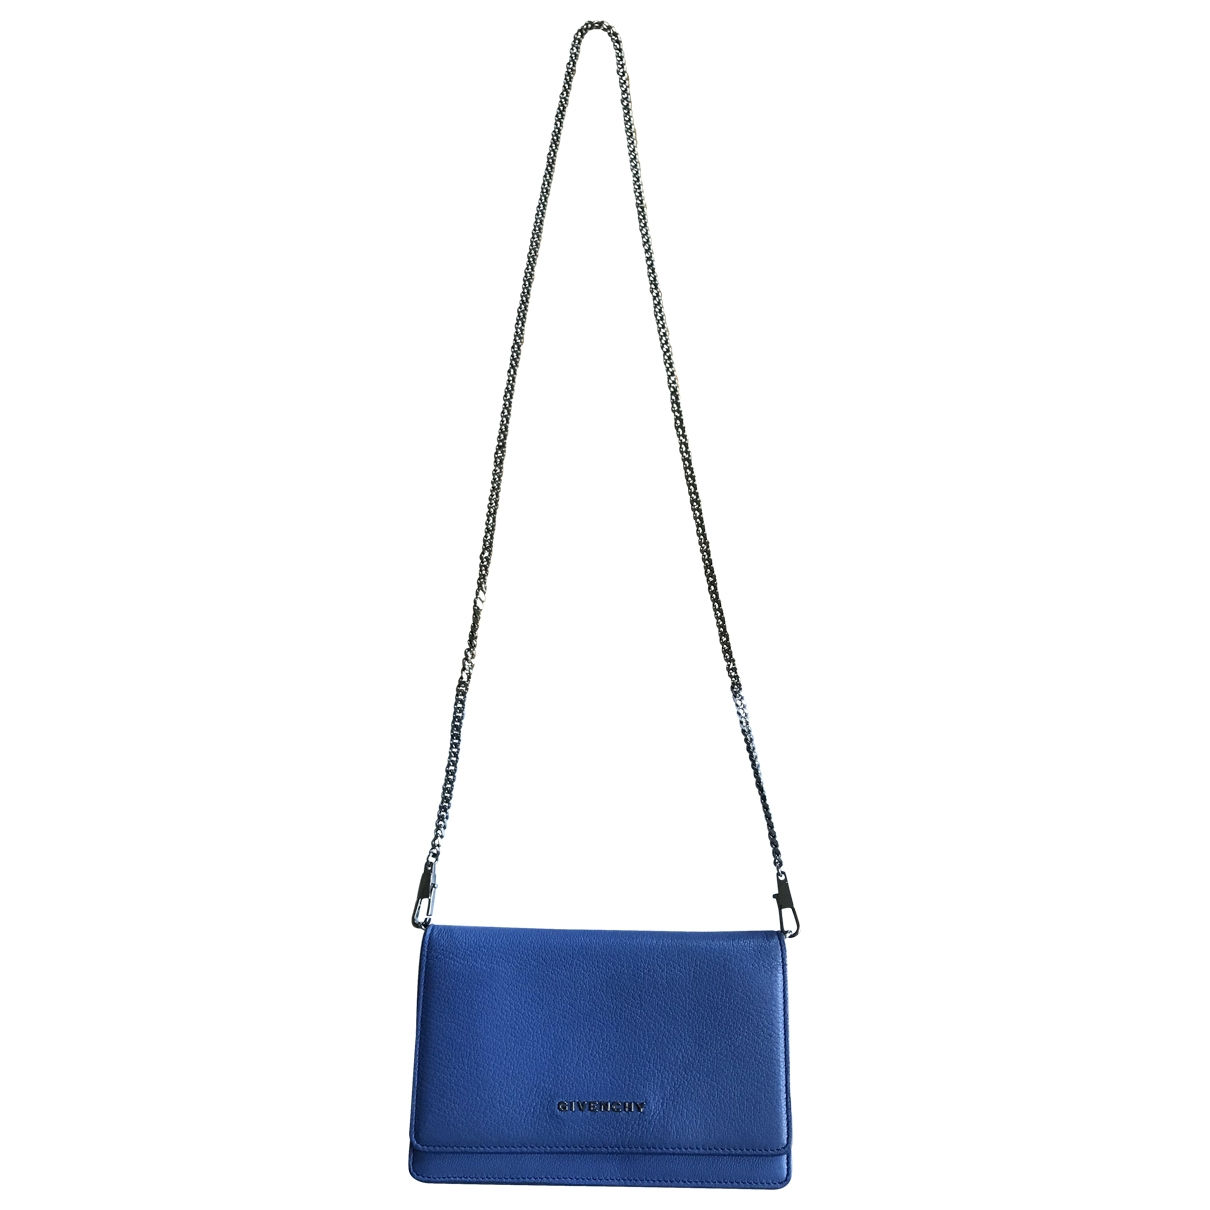 Givenchy Pandora Blue Leather handbag for Women \N